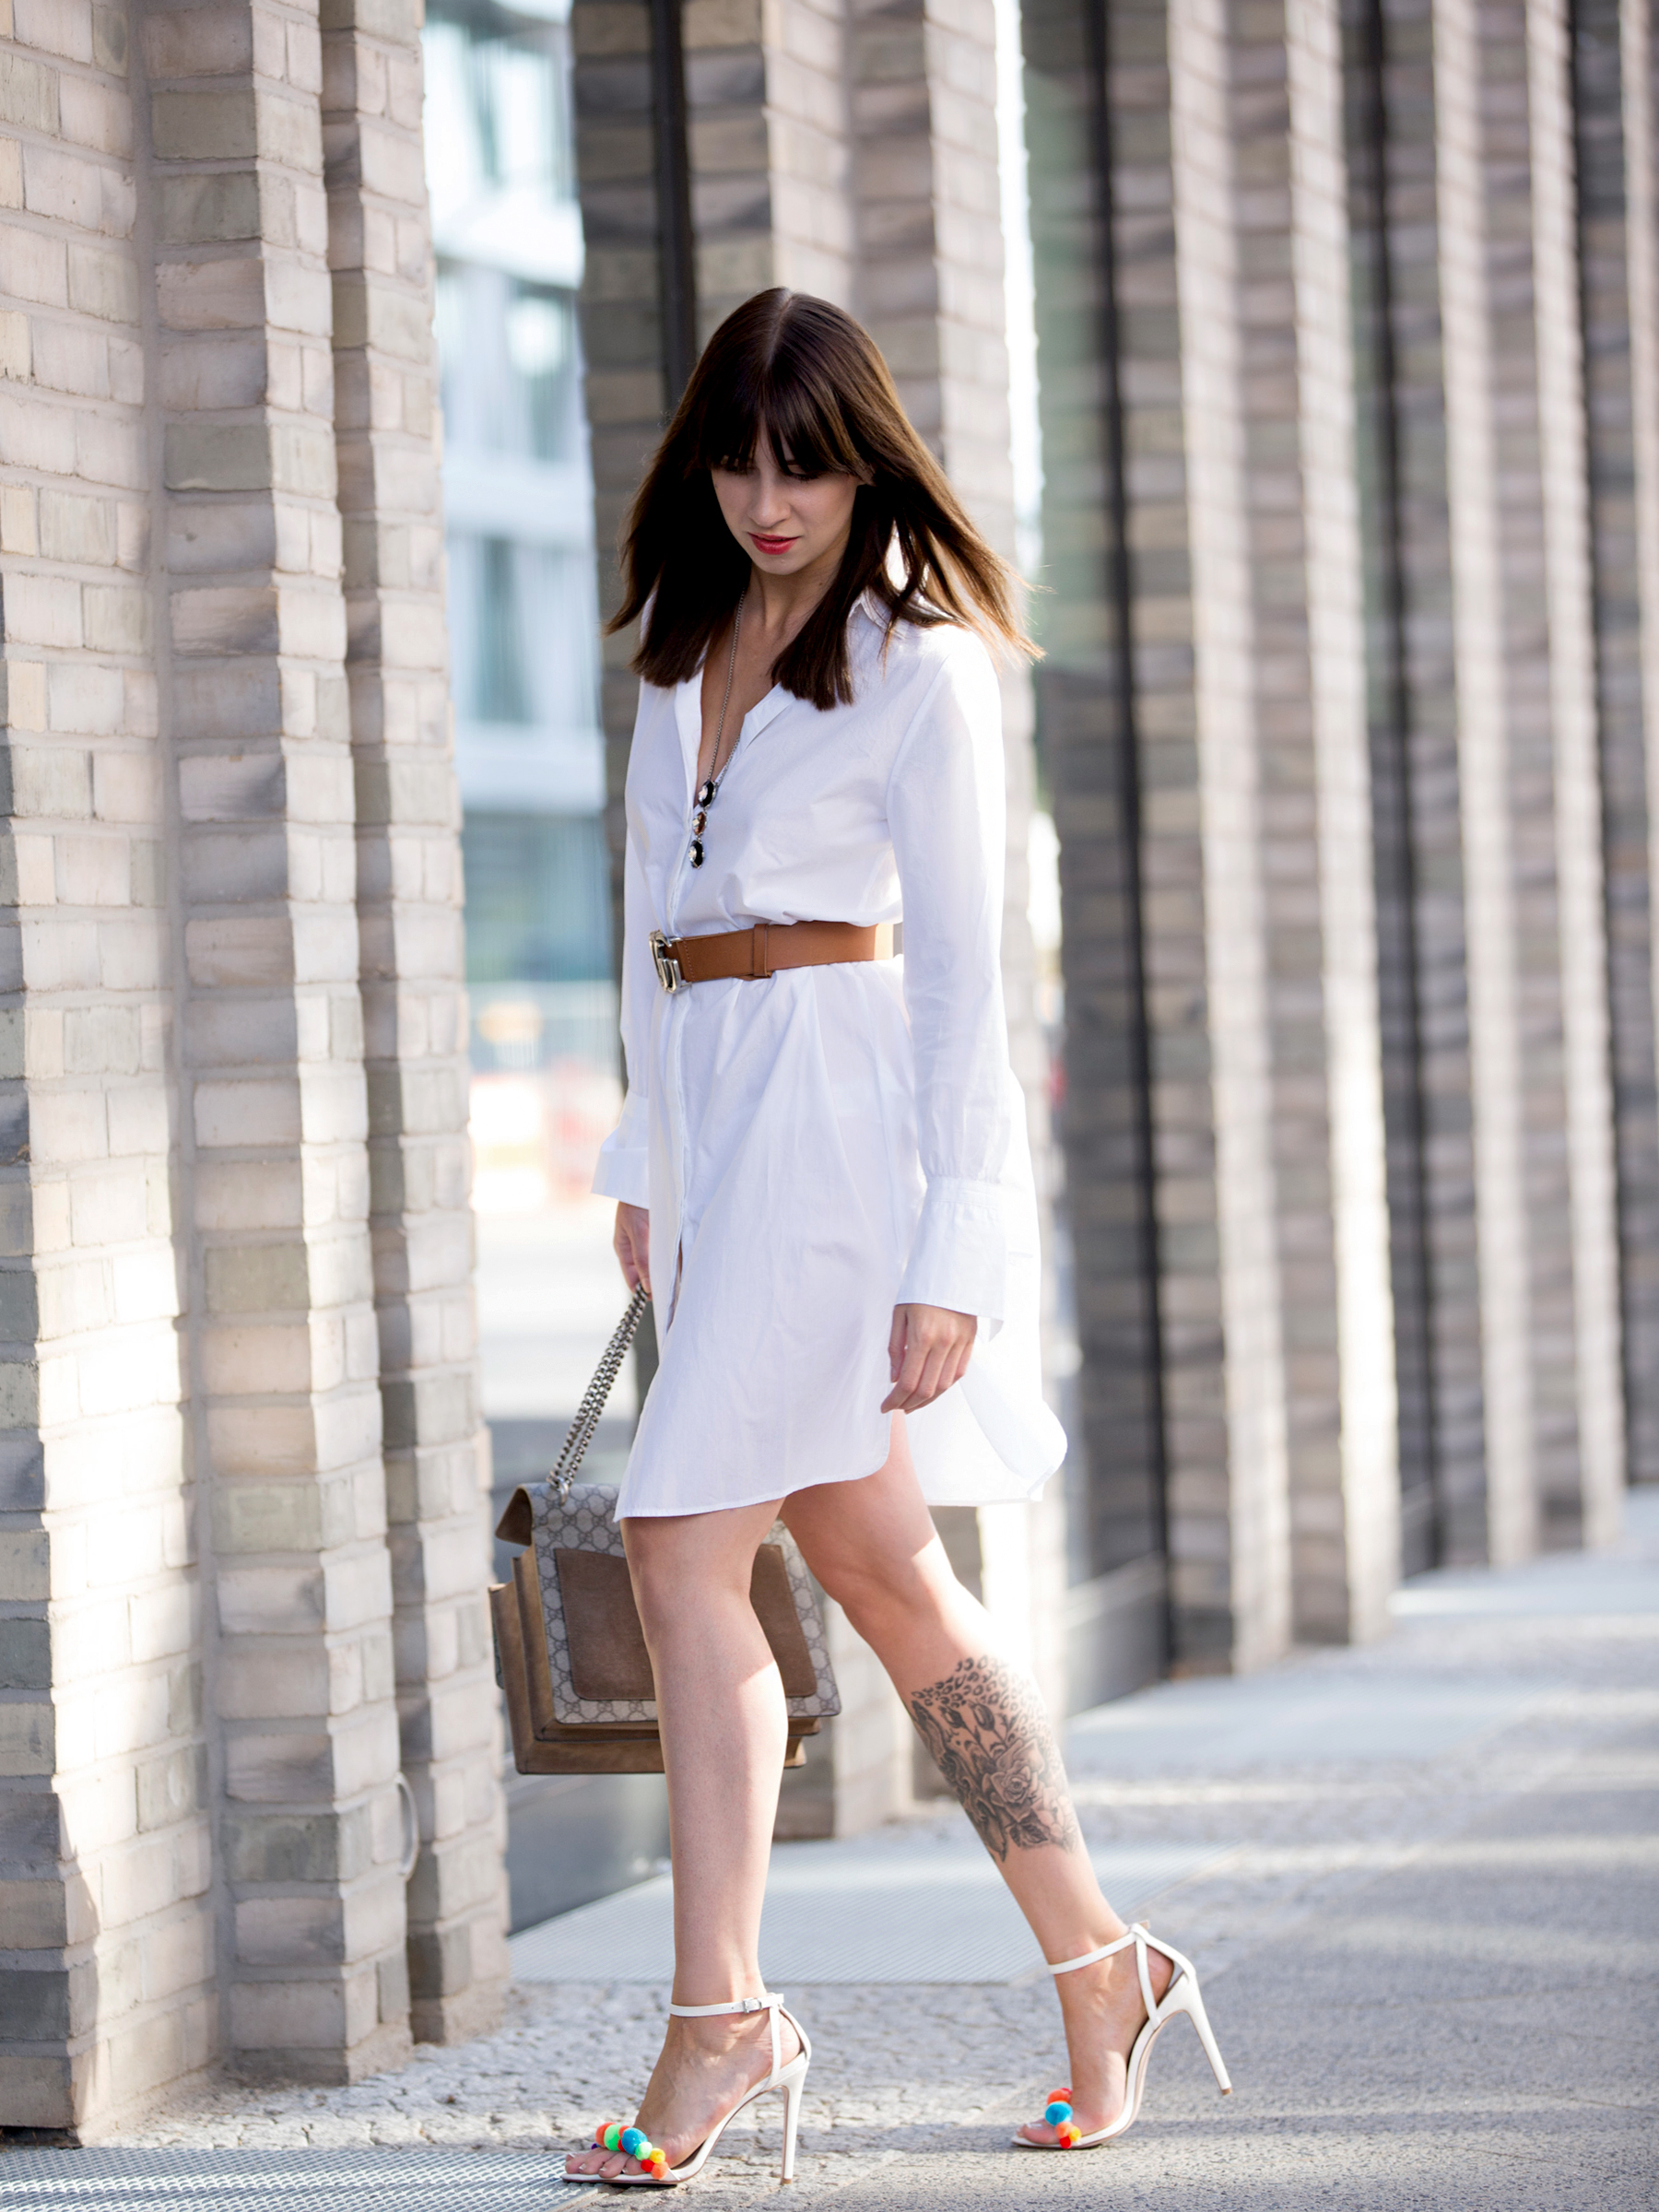 outfit white dress gucci belt dionysus bag pompom heels aquazzura diy blogger ootd fashionblogger summer streetstyle berlin bloggers cats & dogs modeblog ricarda schernus lifestyleblogger 6